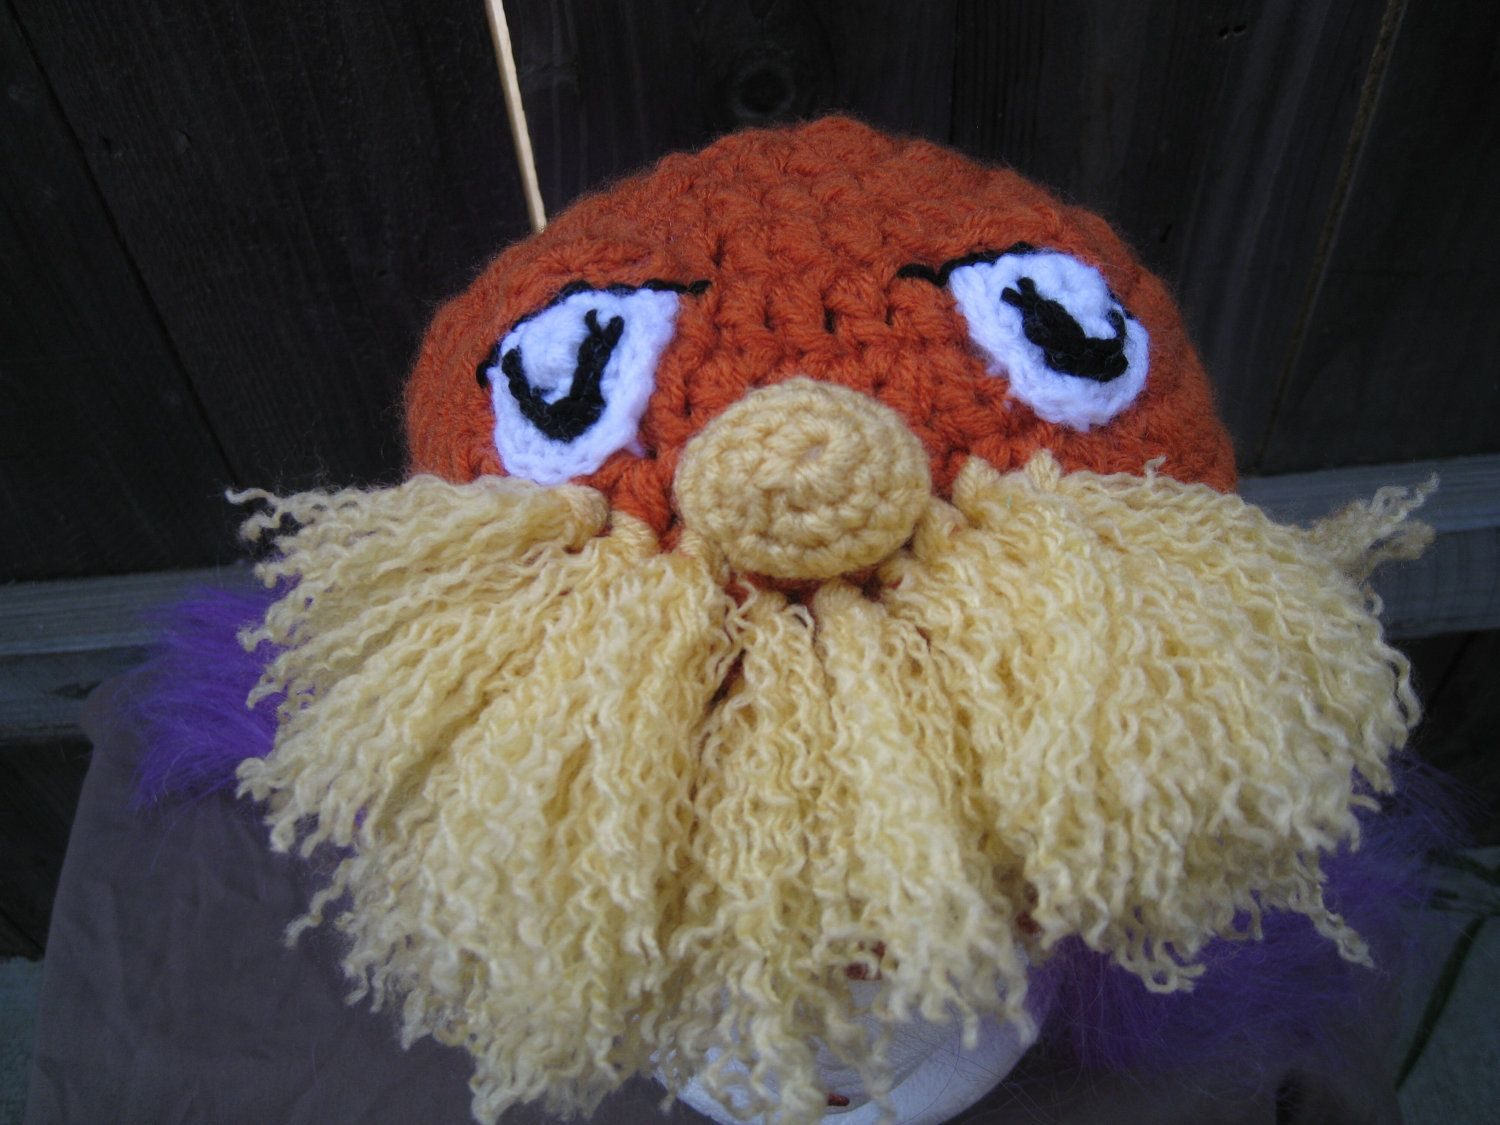 Lorax Tribute Hat - $20.00 on Etsy.